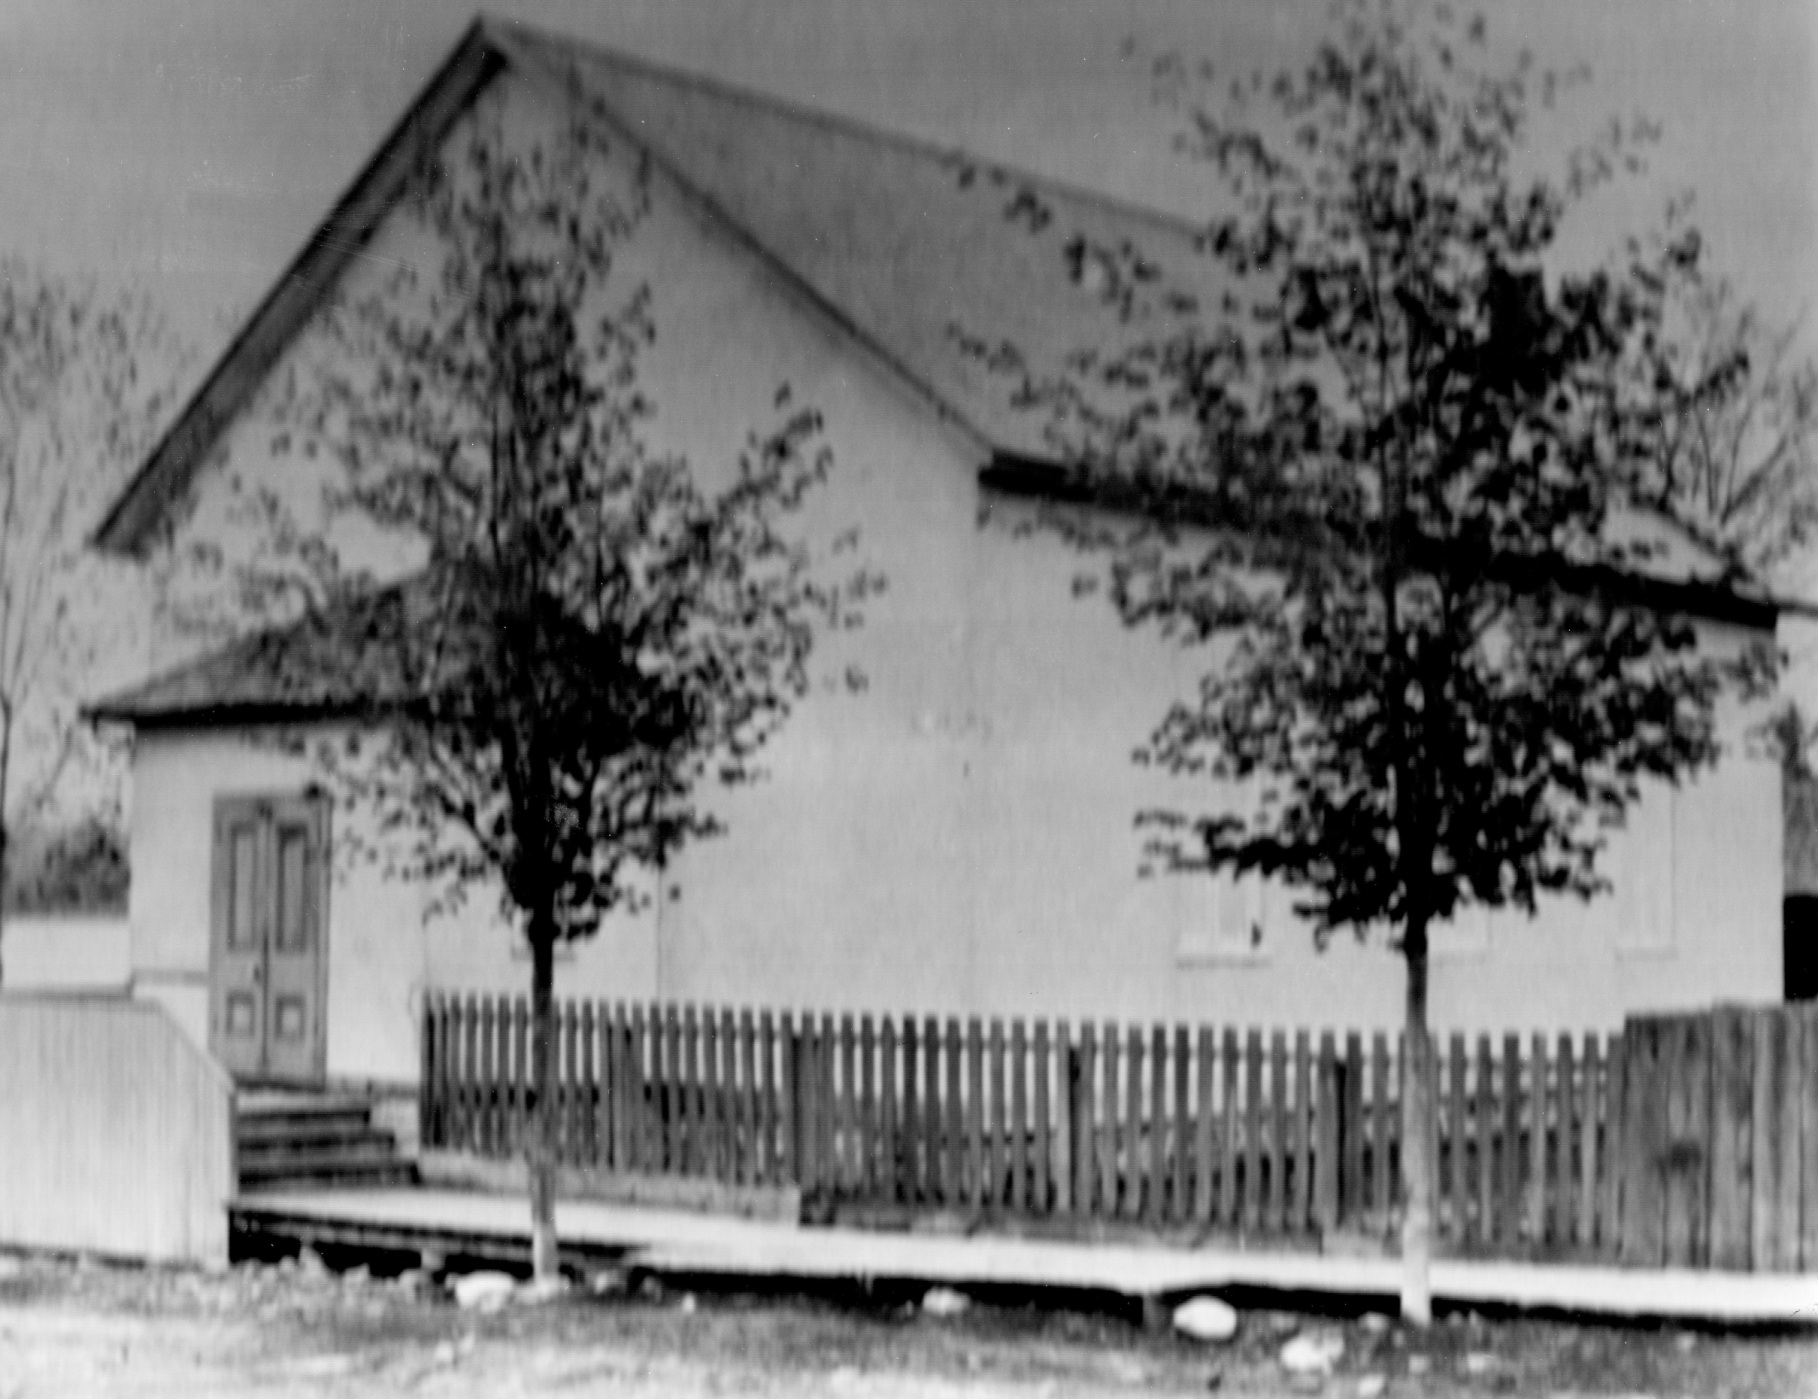 Old Picture of the Church